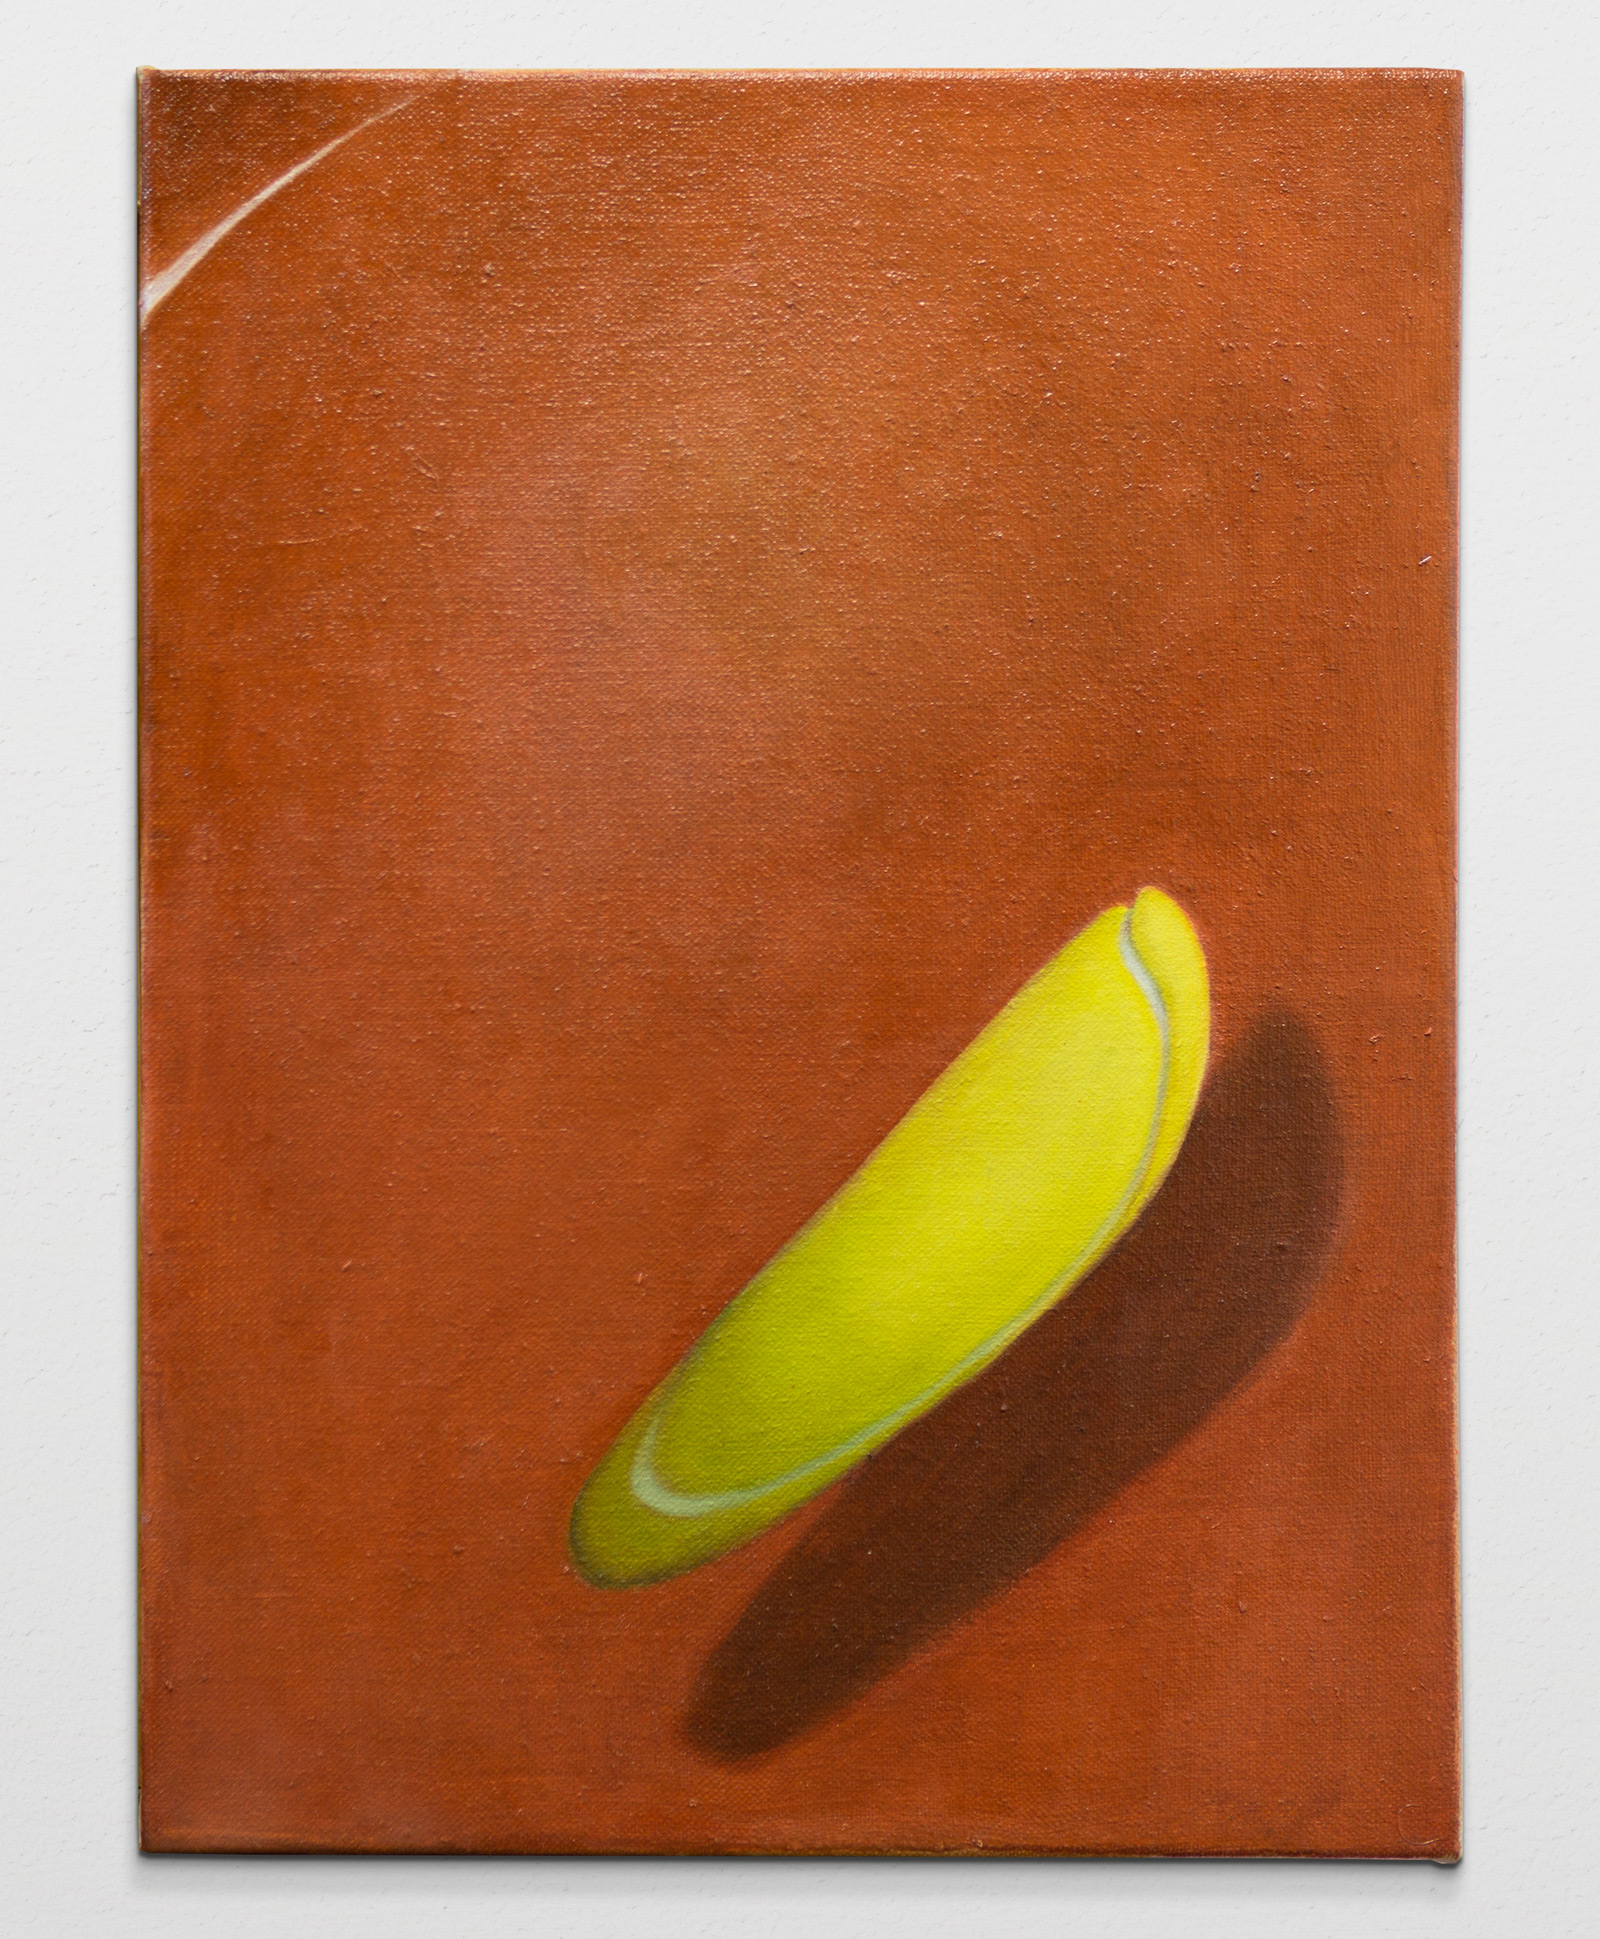 Tennis ball study, 2020, oil on linen, 41x30cm